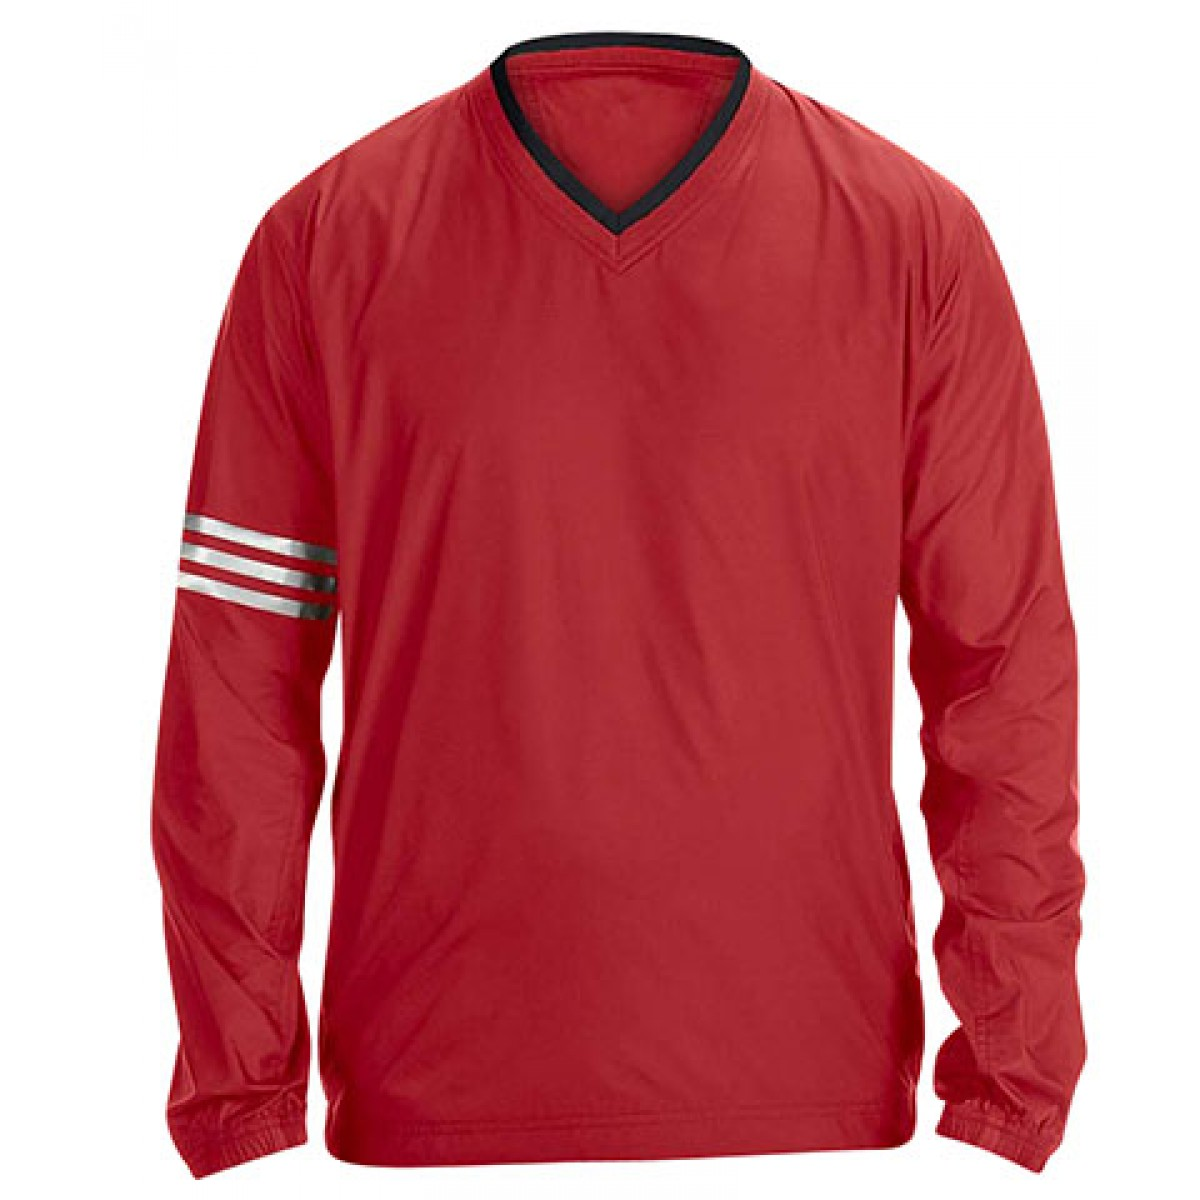 Adidas ClimaLite V-Neck Long Sleeve Wind Shirt-Red-2XL